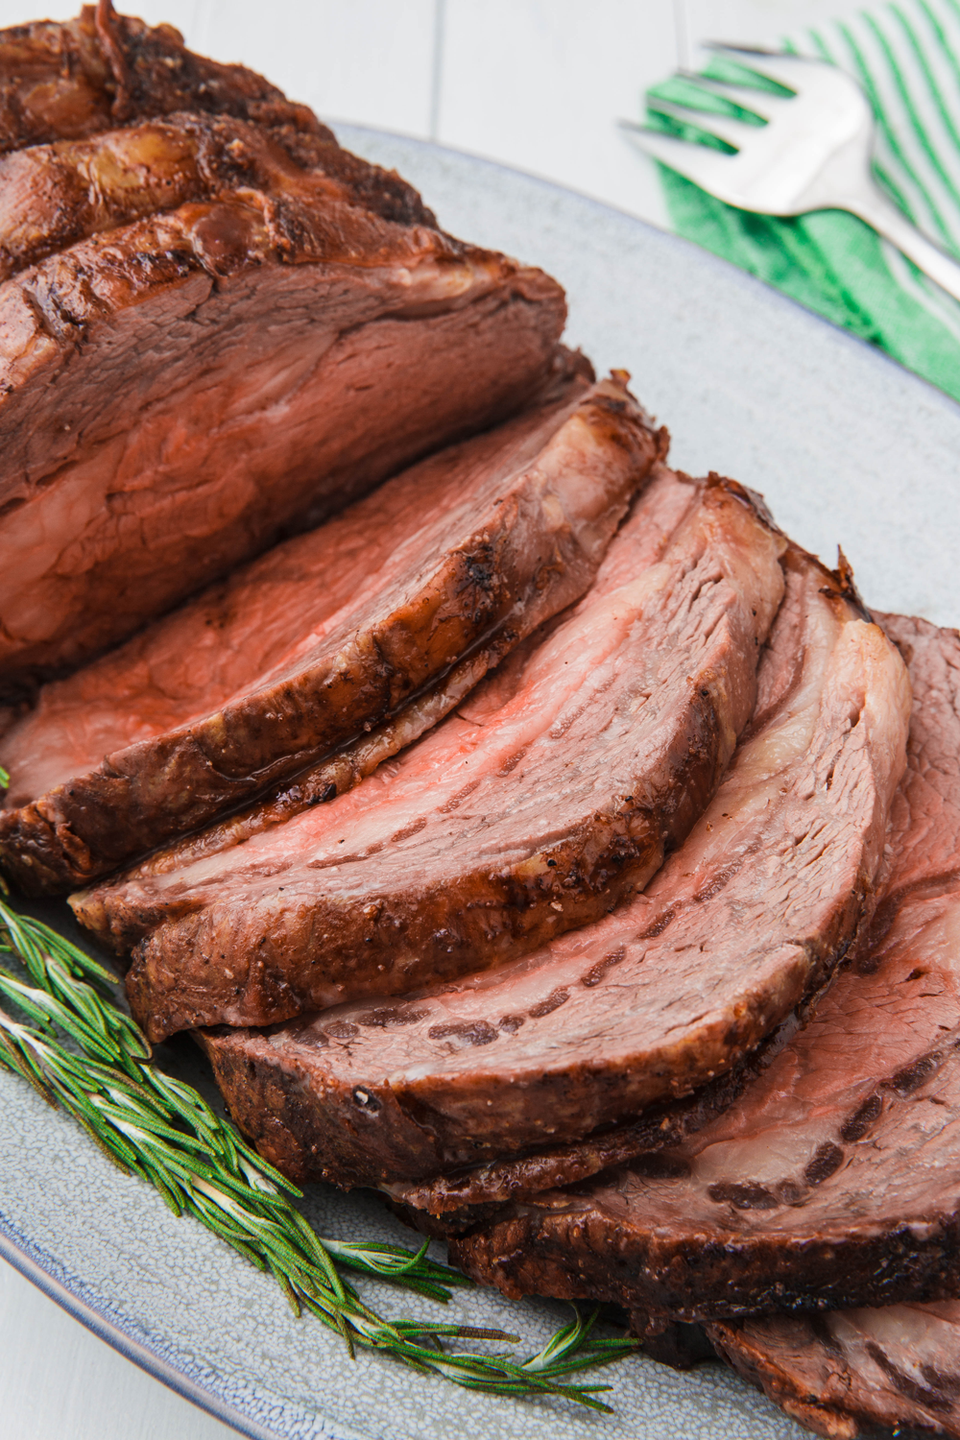 """<p>It's the rib roast recipe you'll go back to again and again.</p><p>Get the recipe from <a href=""""https://www.delish.com/cooking/recipes/a50475/best-prime-rib-recipe/"""" rel=""""nofollow noopener"""" target=""""_blank"""" data-ylk=""""slk:Delish"""" class=""""link rapid-noclick-resp"""">Delish</a>.</p>"""